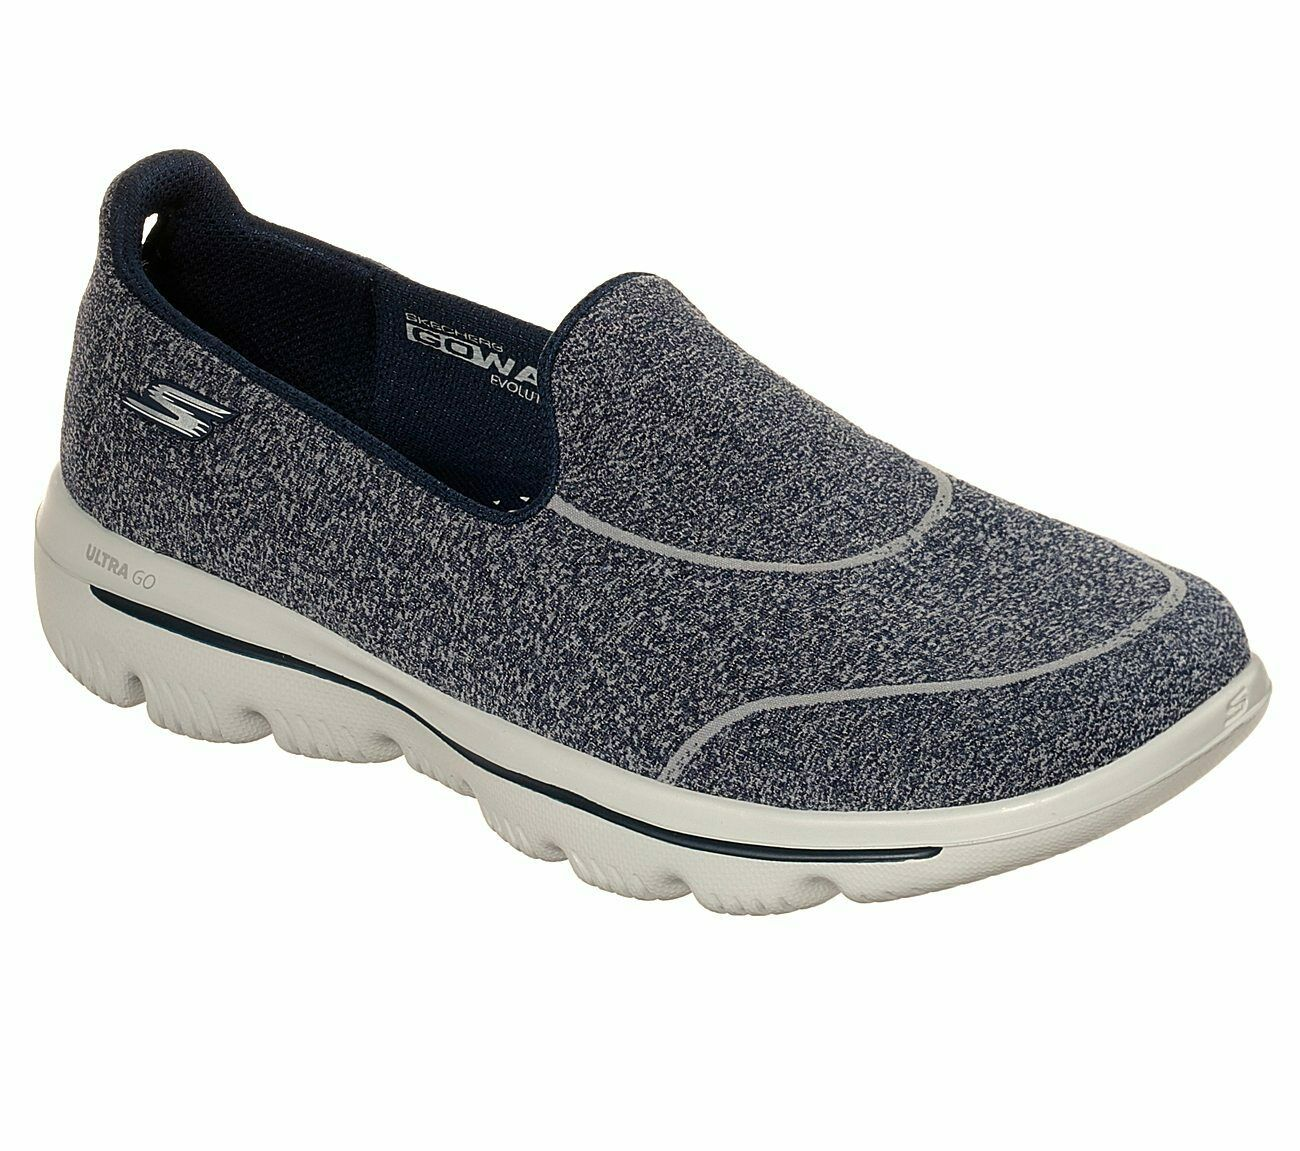 Skechers Women's GOwalk Evolution Ultra - Dedicate, 15732 NVY Comfort shoes